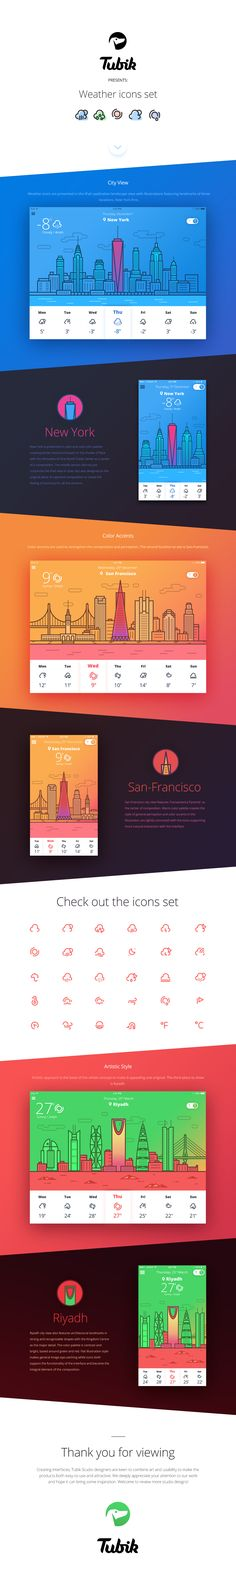 88 Best UI Design images | UI Design, Interface design